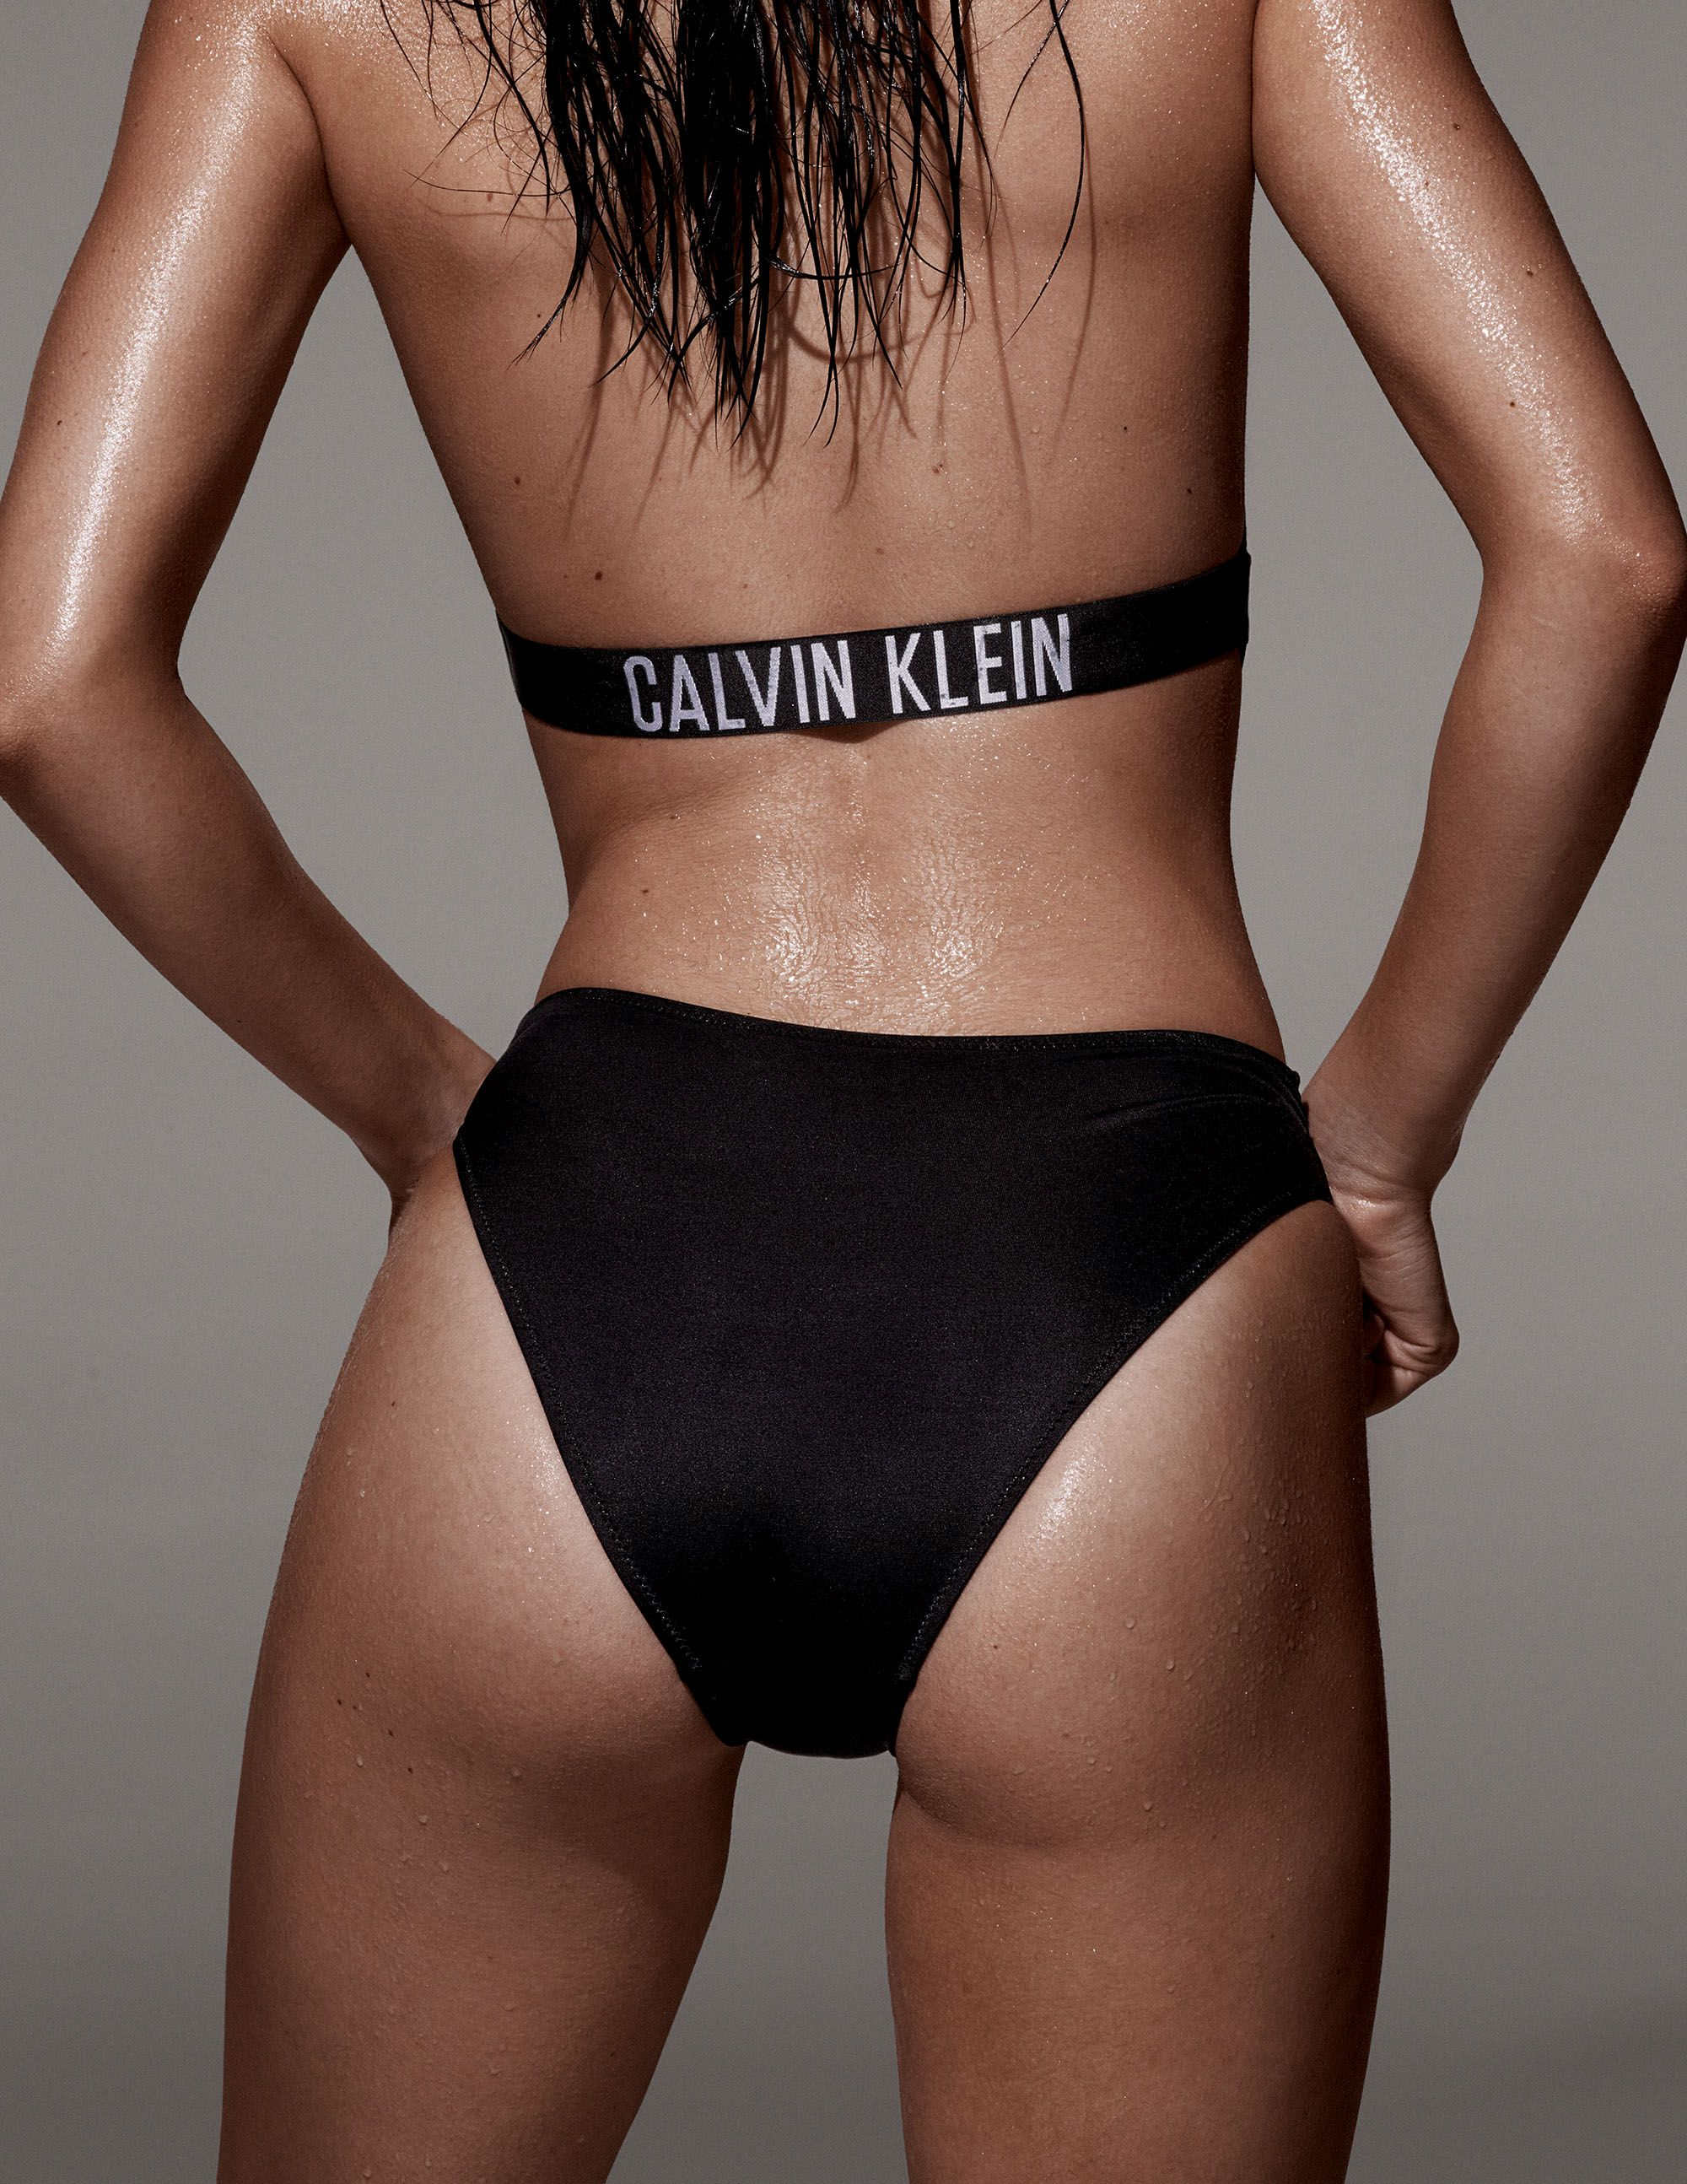 44c71c59286 Kendall Jenner celebrates the return of Calvin Klein swimwear in the  Intense Power one-piece suit. Photographed for LOVE magazine.  mycalvins